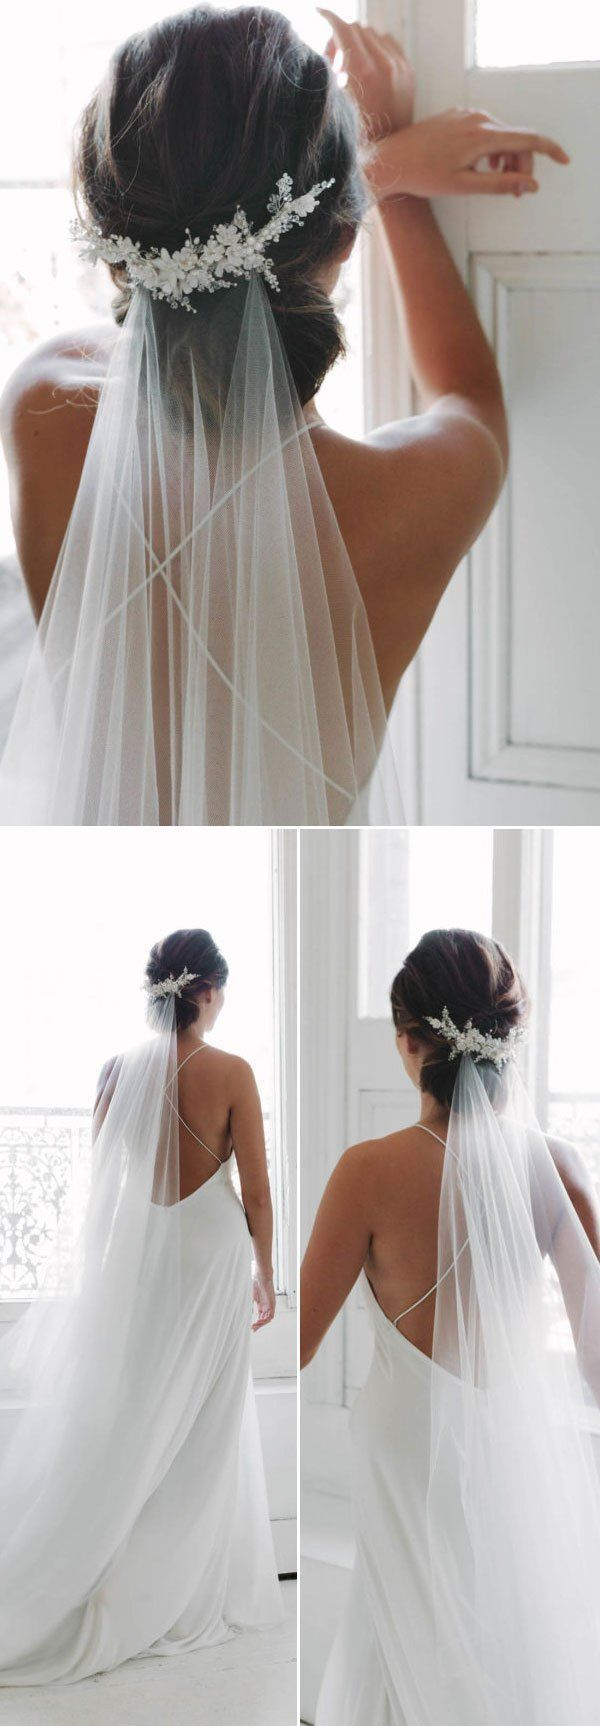 Top 20 Wedding Hairstyles with Veils and Accessories - Forevermorebling | Wedding Blog #accessories